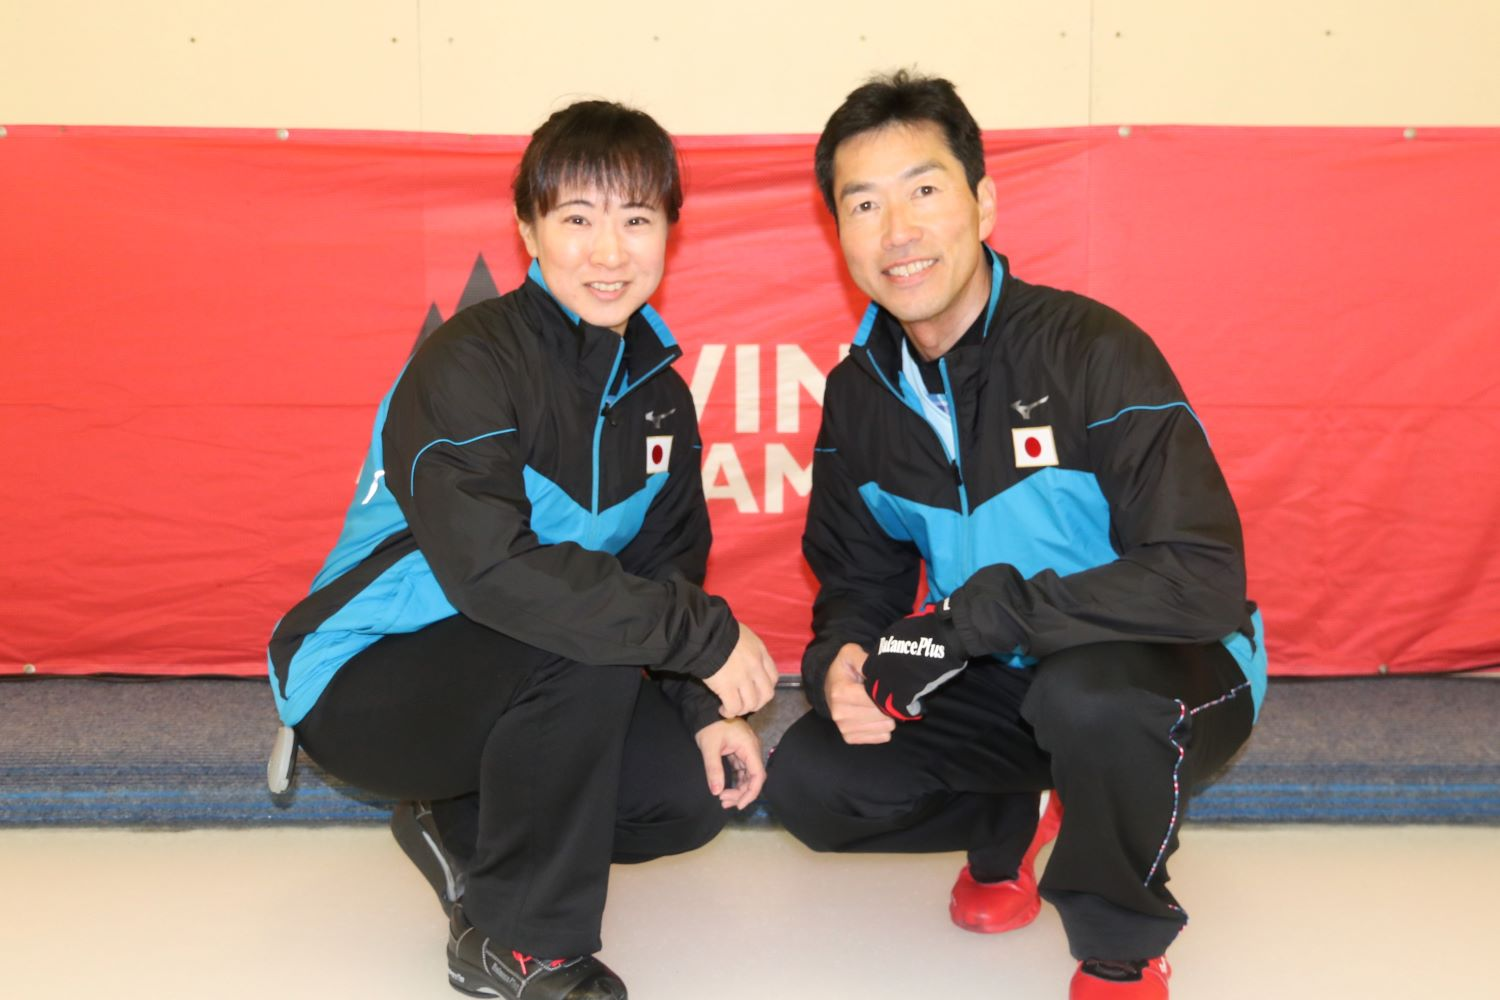 Team Japan - Misako Den and Naofumi Den